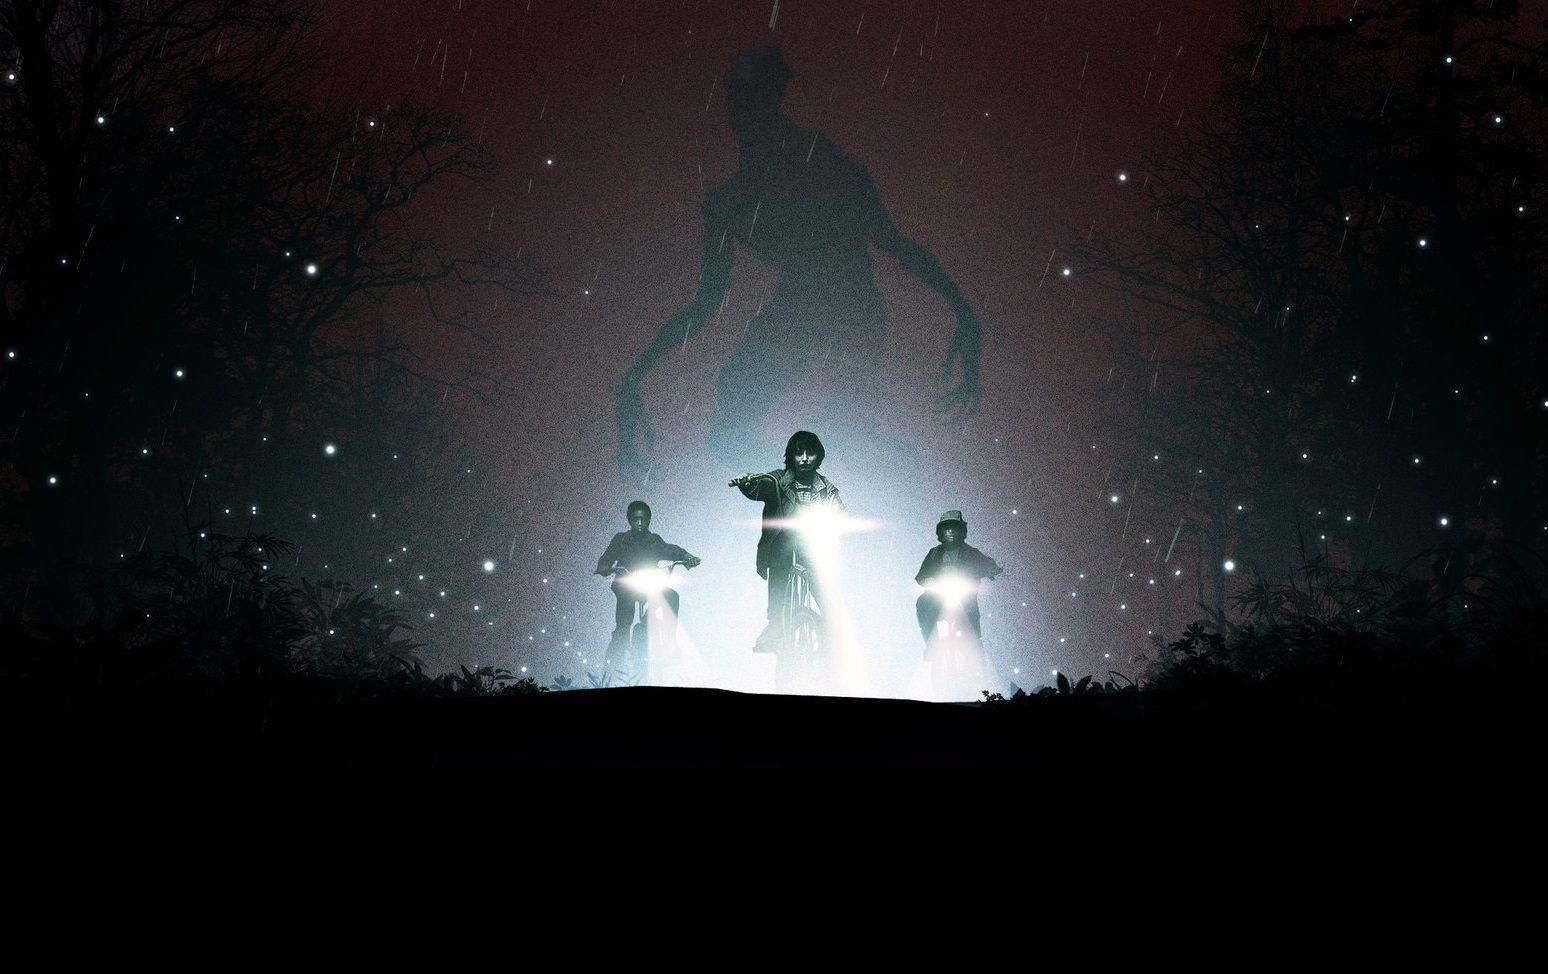 10 Stranger Things Hd Wallpapers Backgrounds Wallpaper Abyss Stranger Things Poster Stranger Things Wallpaper Stranger Things Fanart